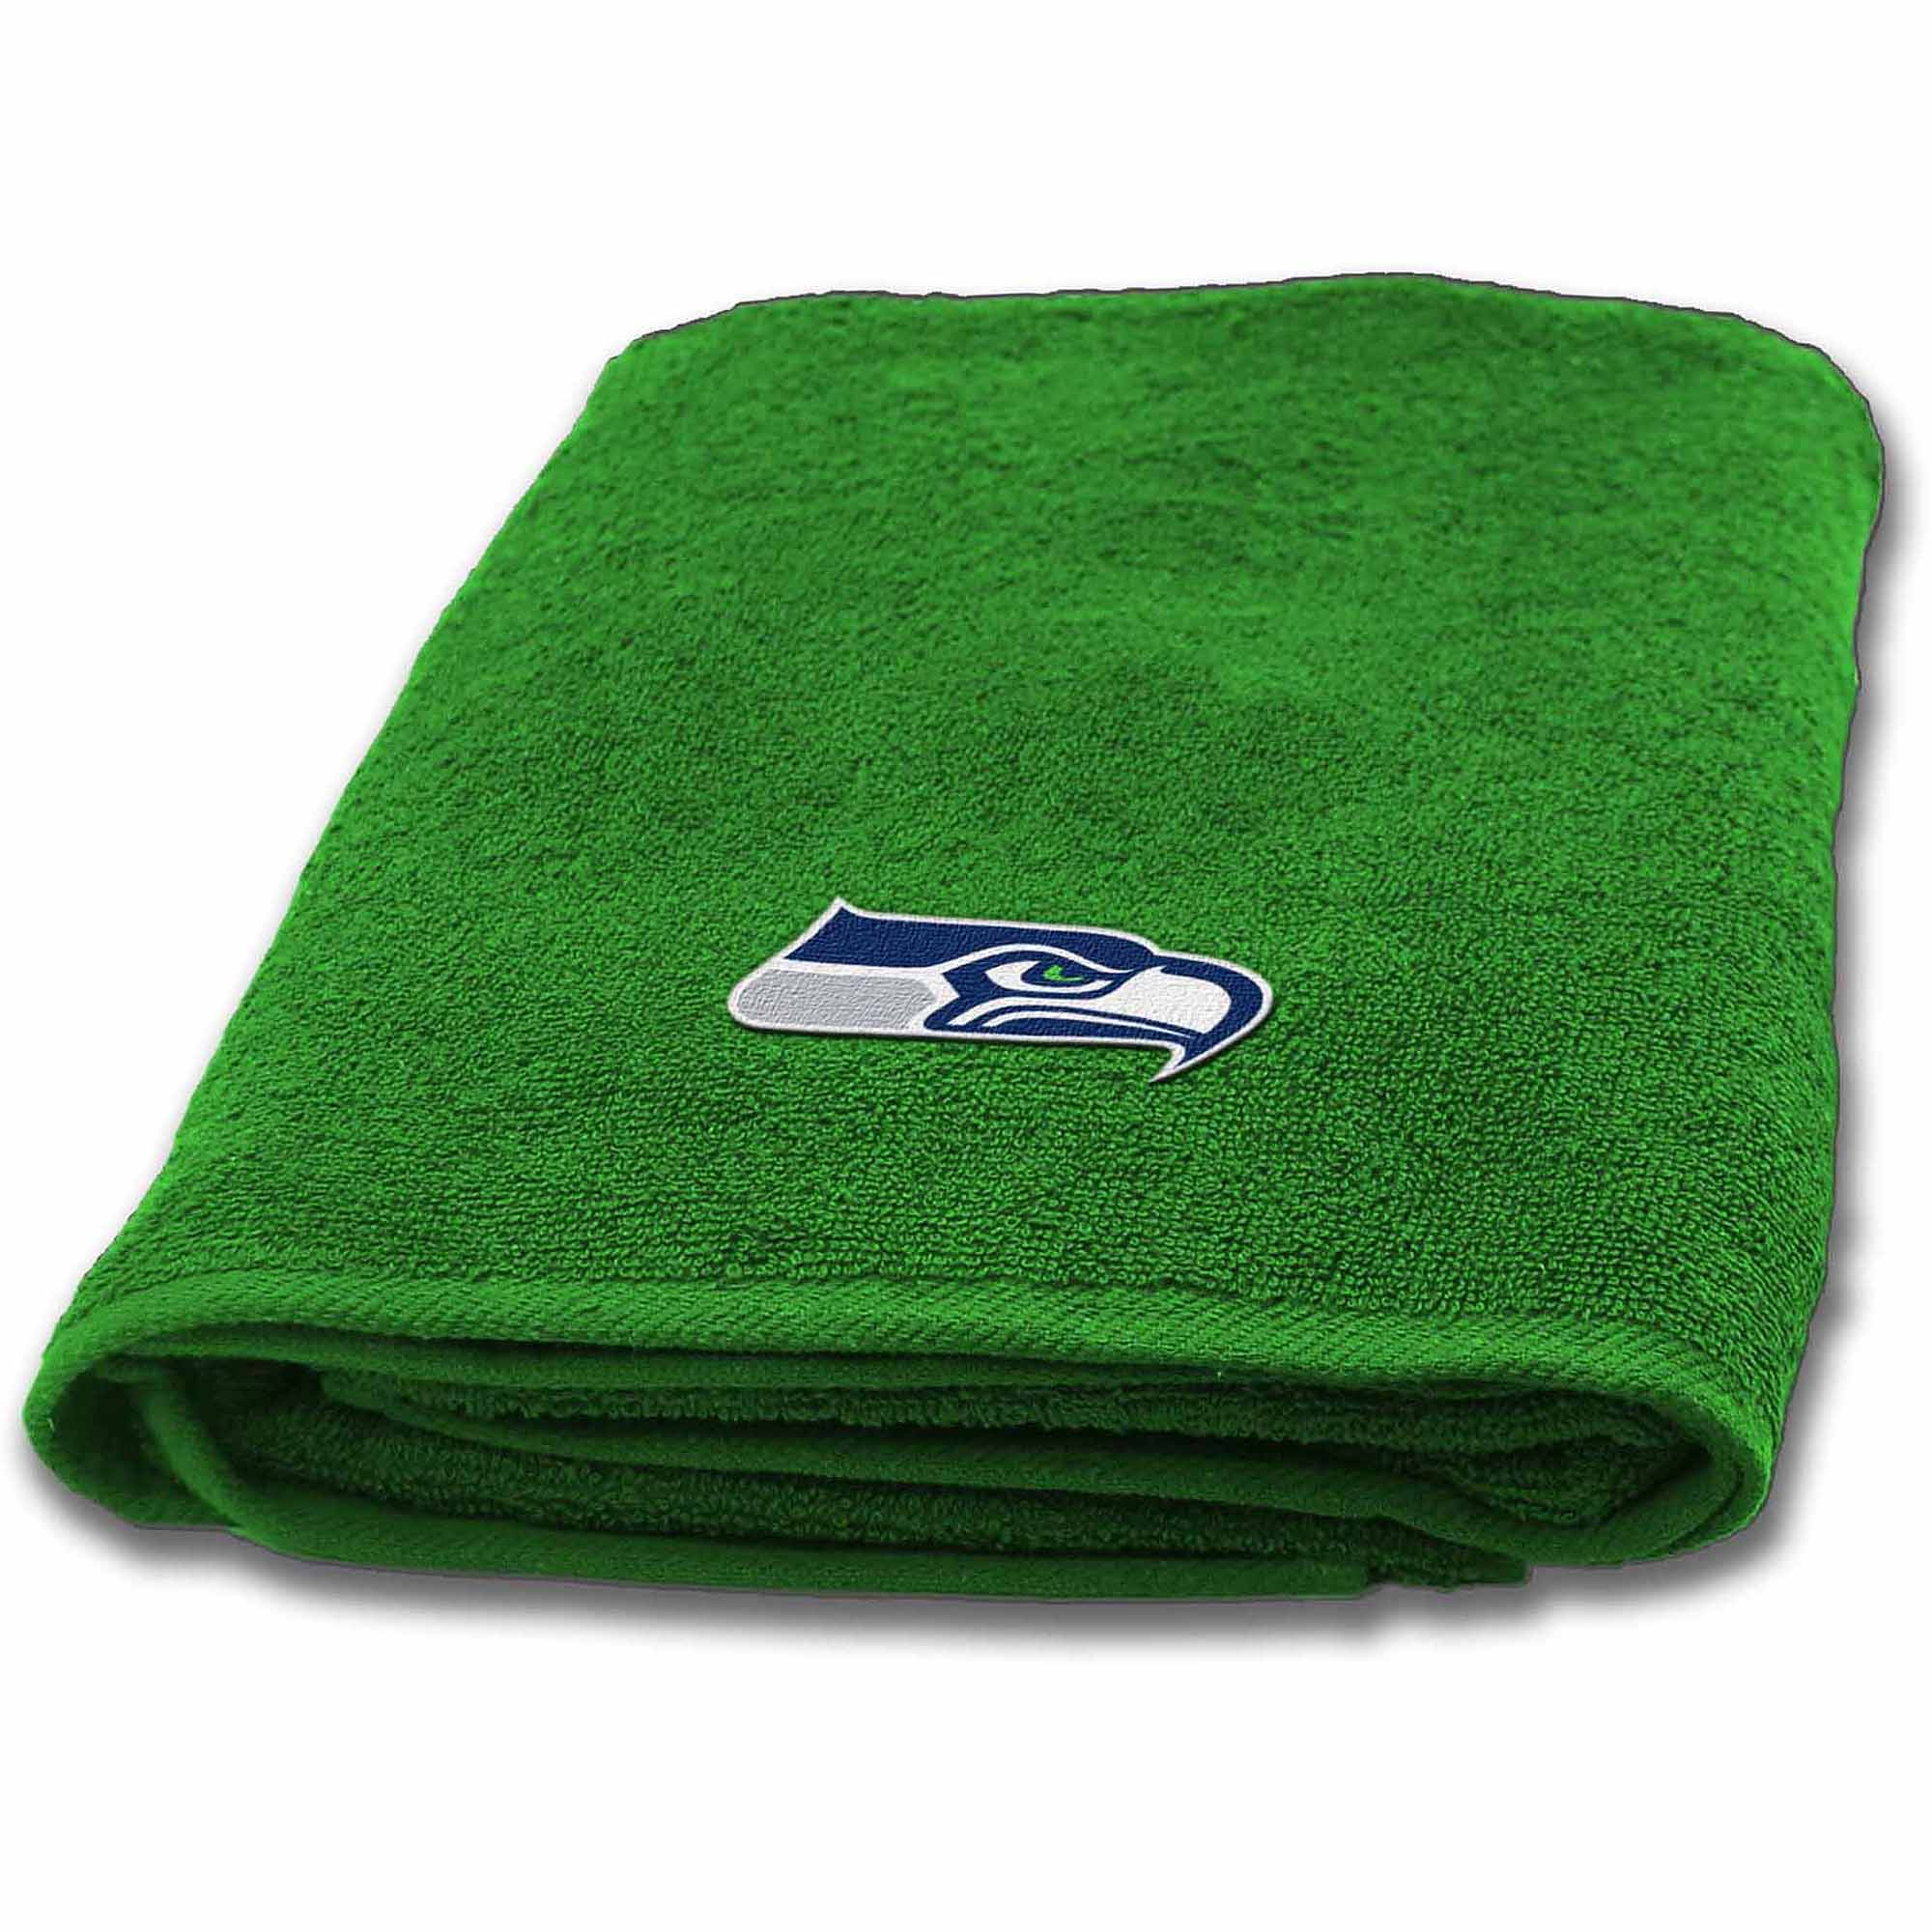 NFL Seattle Seahawks Decorative Bath Collection - Bath Towel